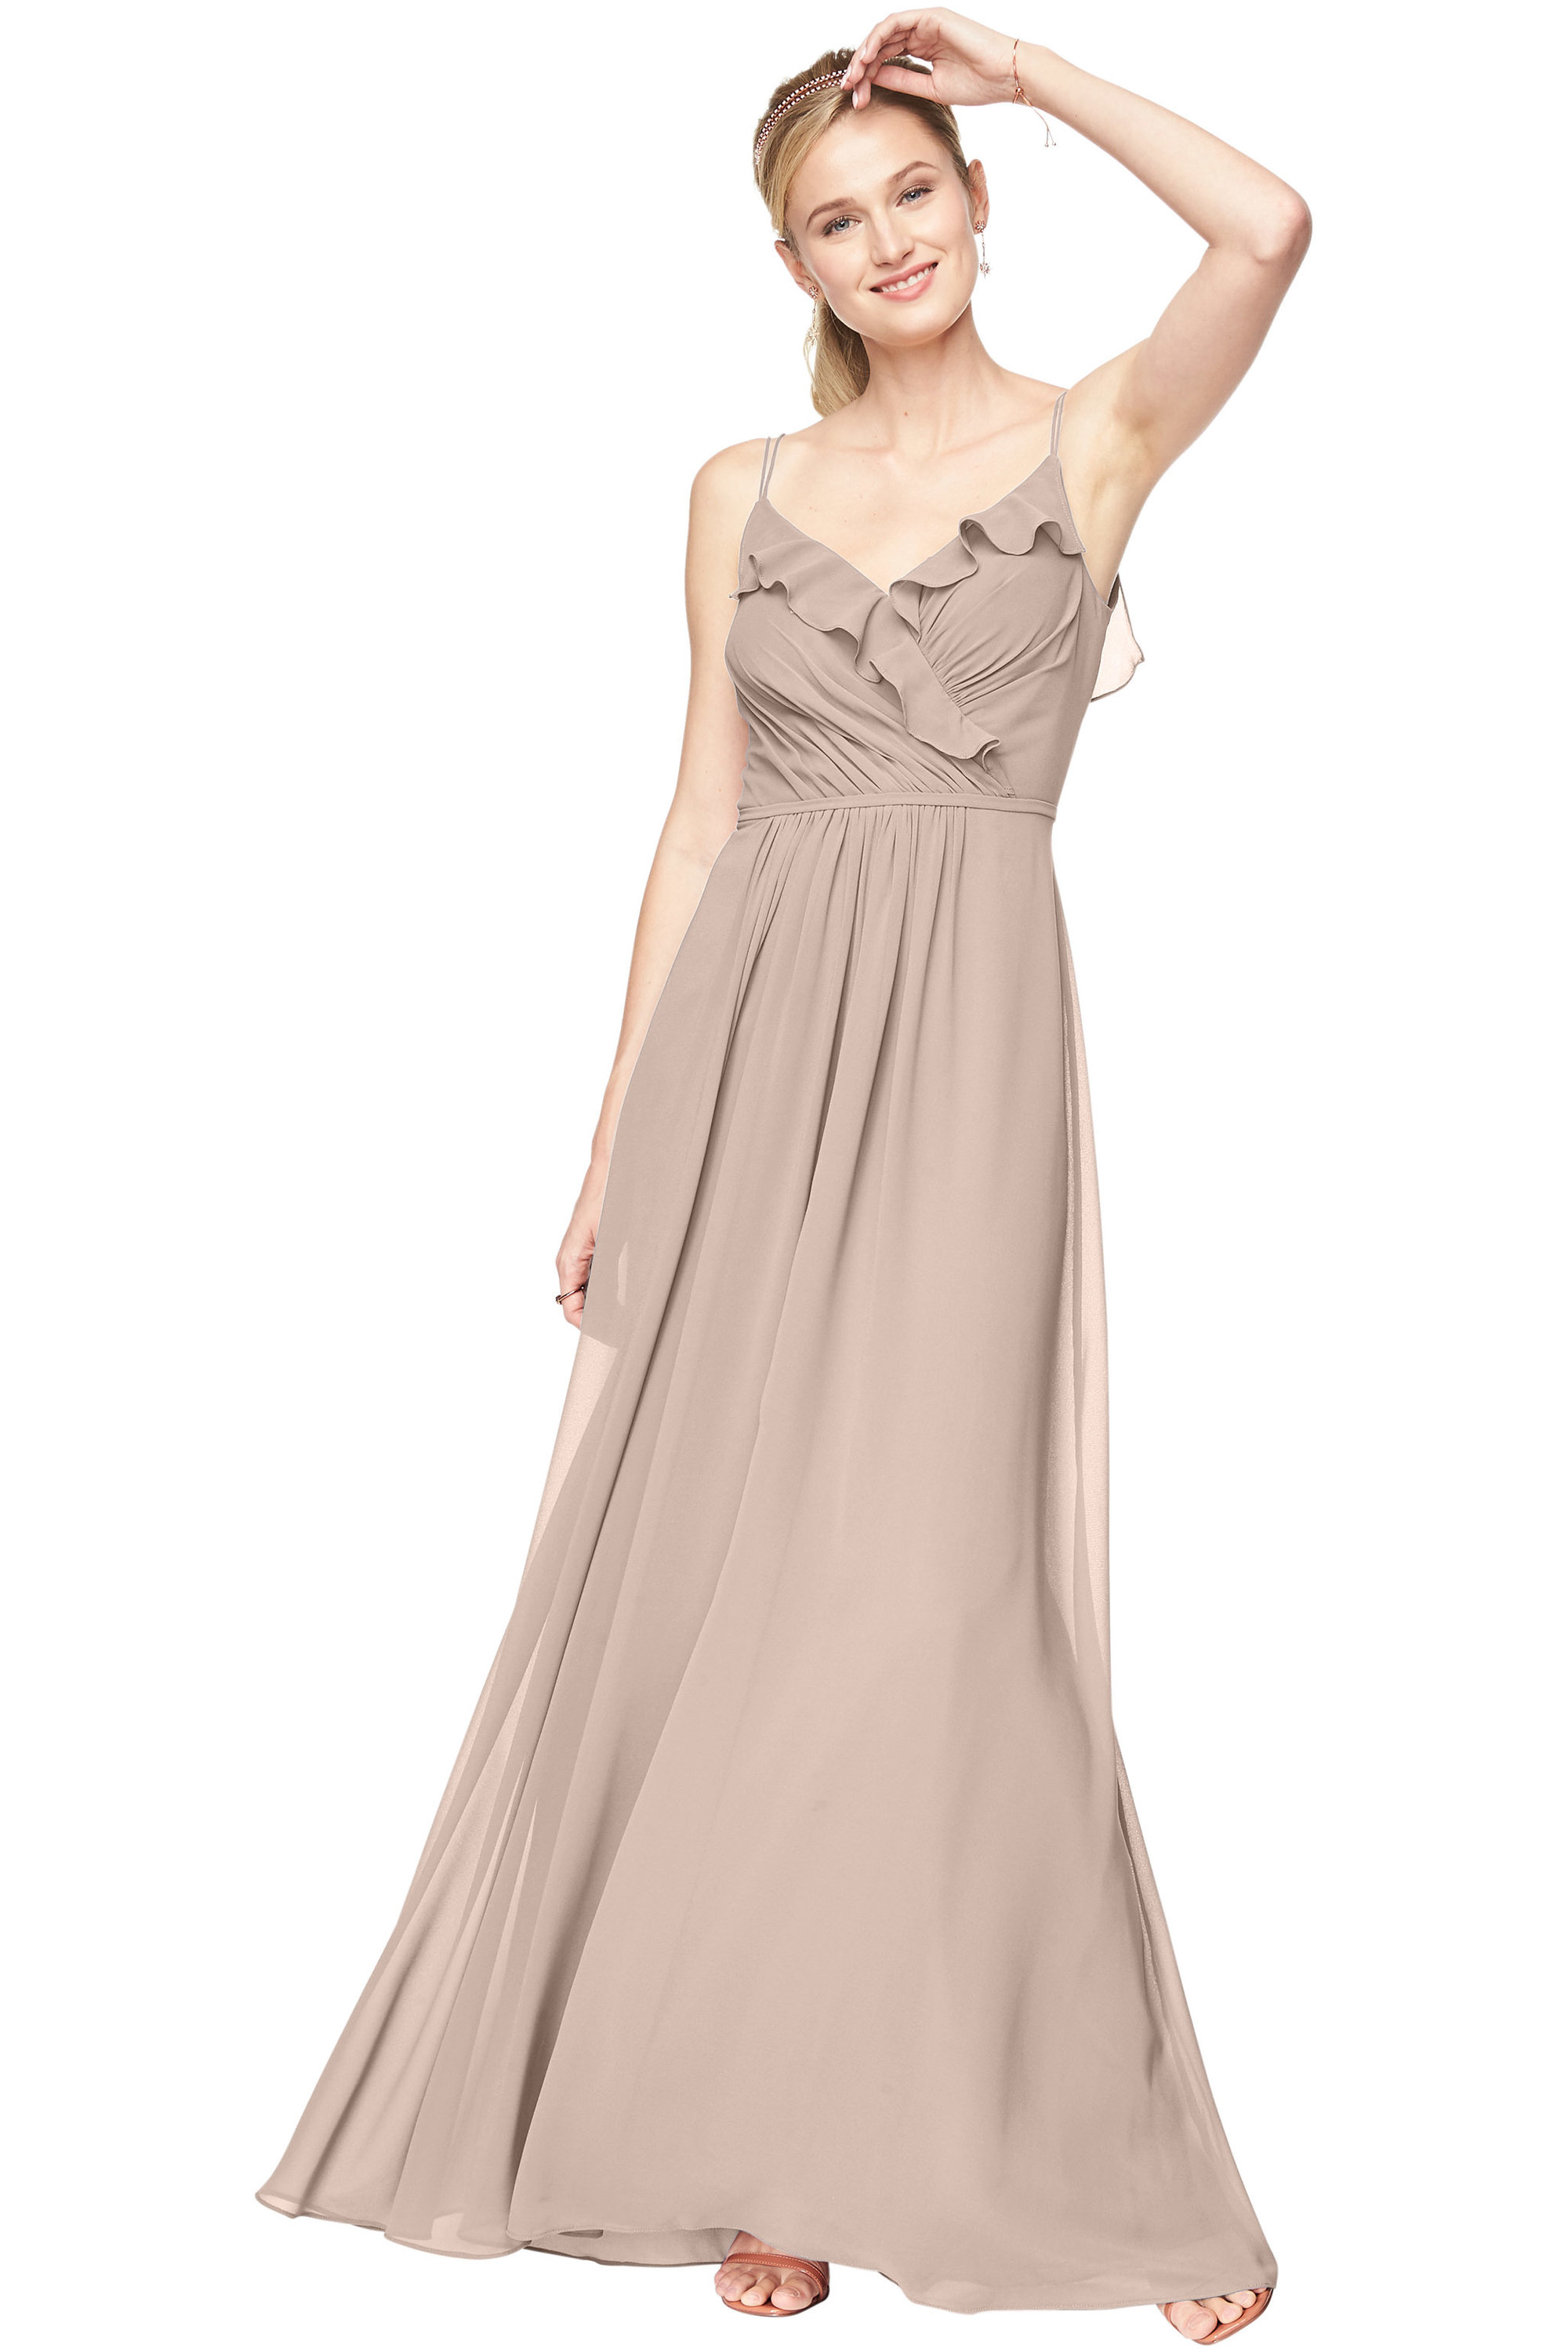 Bill Levkoff CASHMERE Chiffon V-Neck A-line gown, $198.00 Front